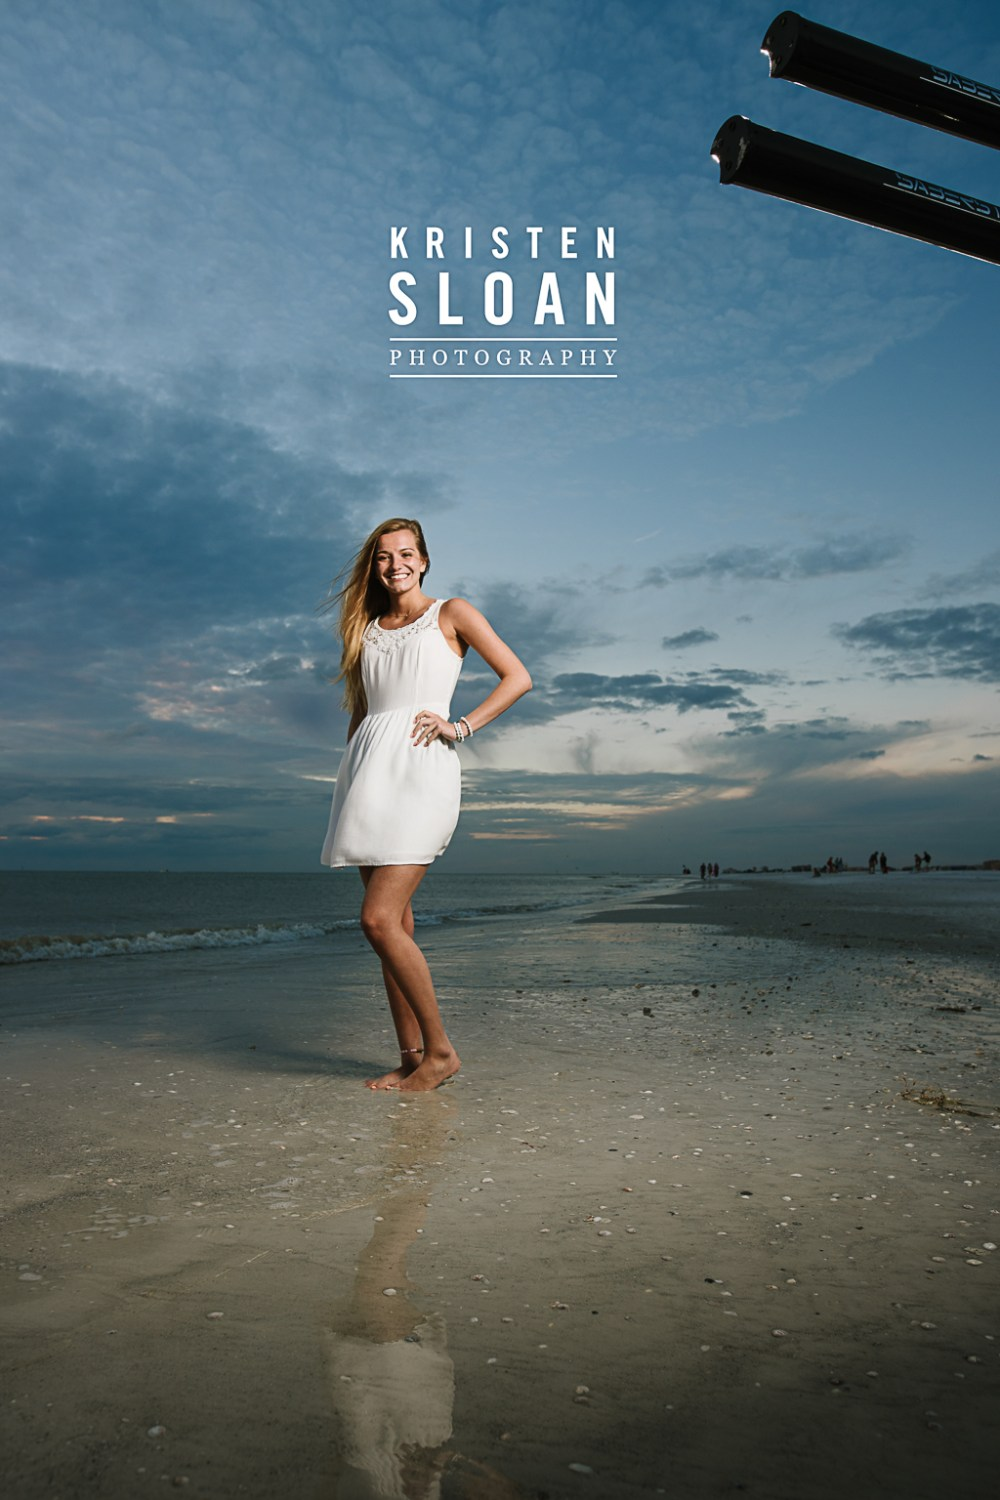 St Pete FL High School Senior Photos at Treasure Island Beach | Saint Petersburg FL Senior Photos Photographer | St Pete Beach Photographer | SaberStrip